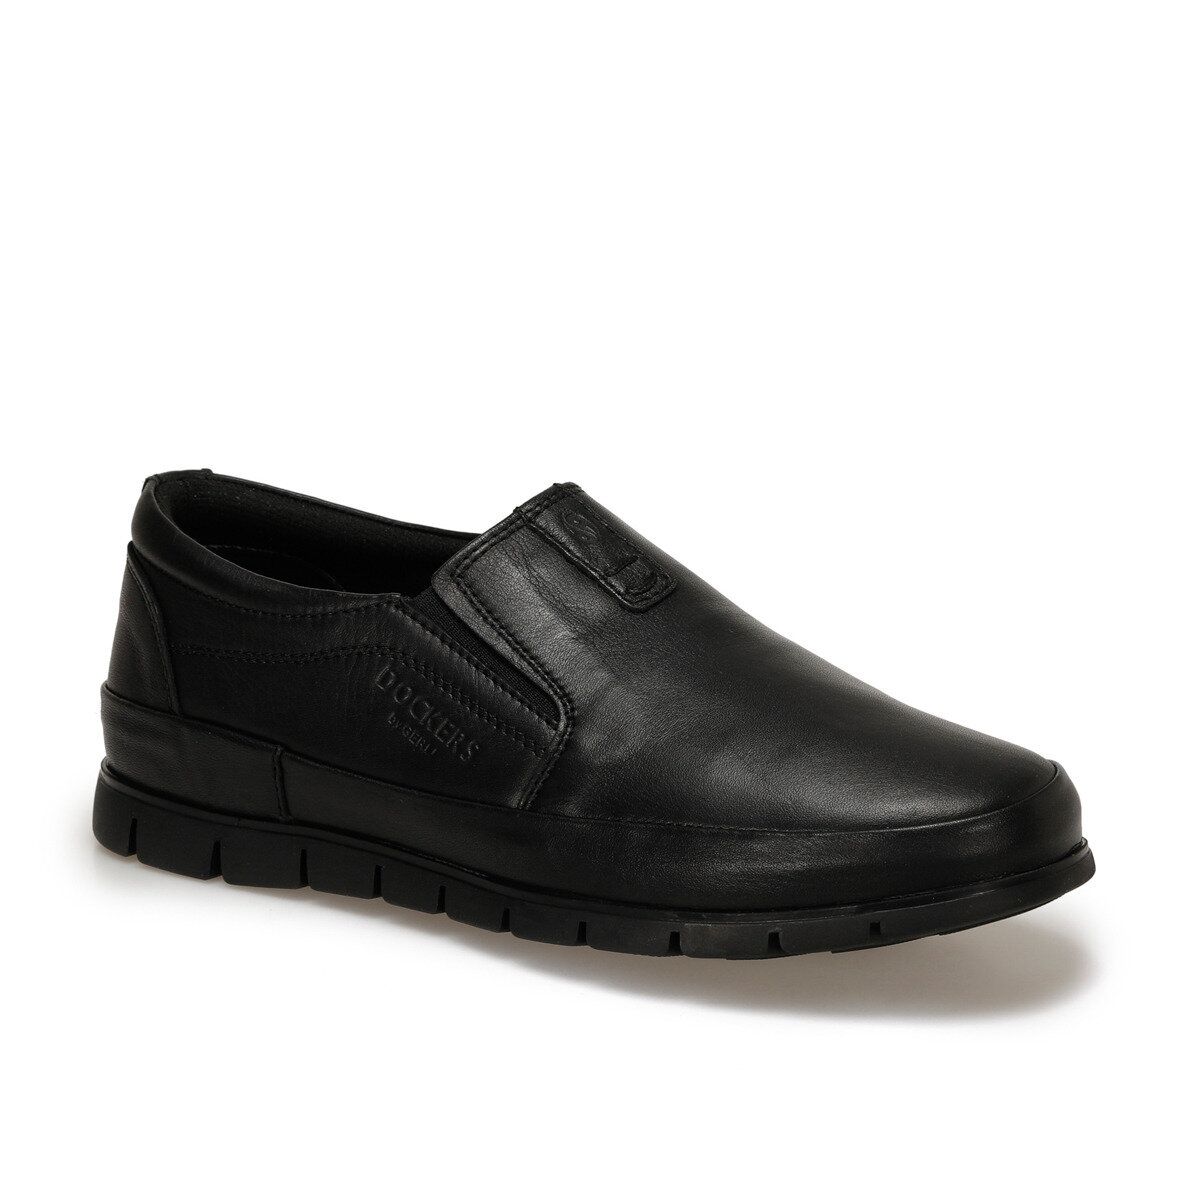 FLO 228000 Black Men 'S Comfort Shoes By Dockers The Gerle